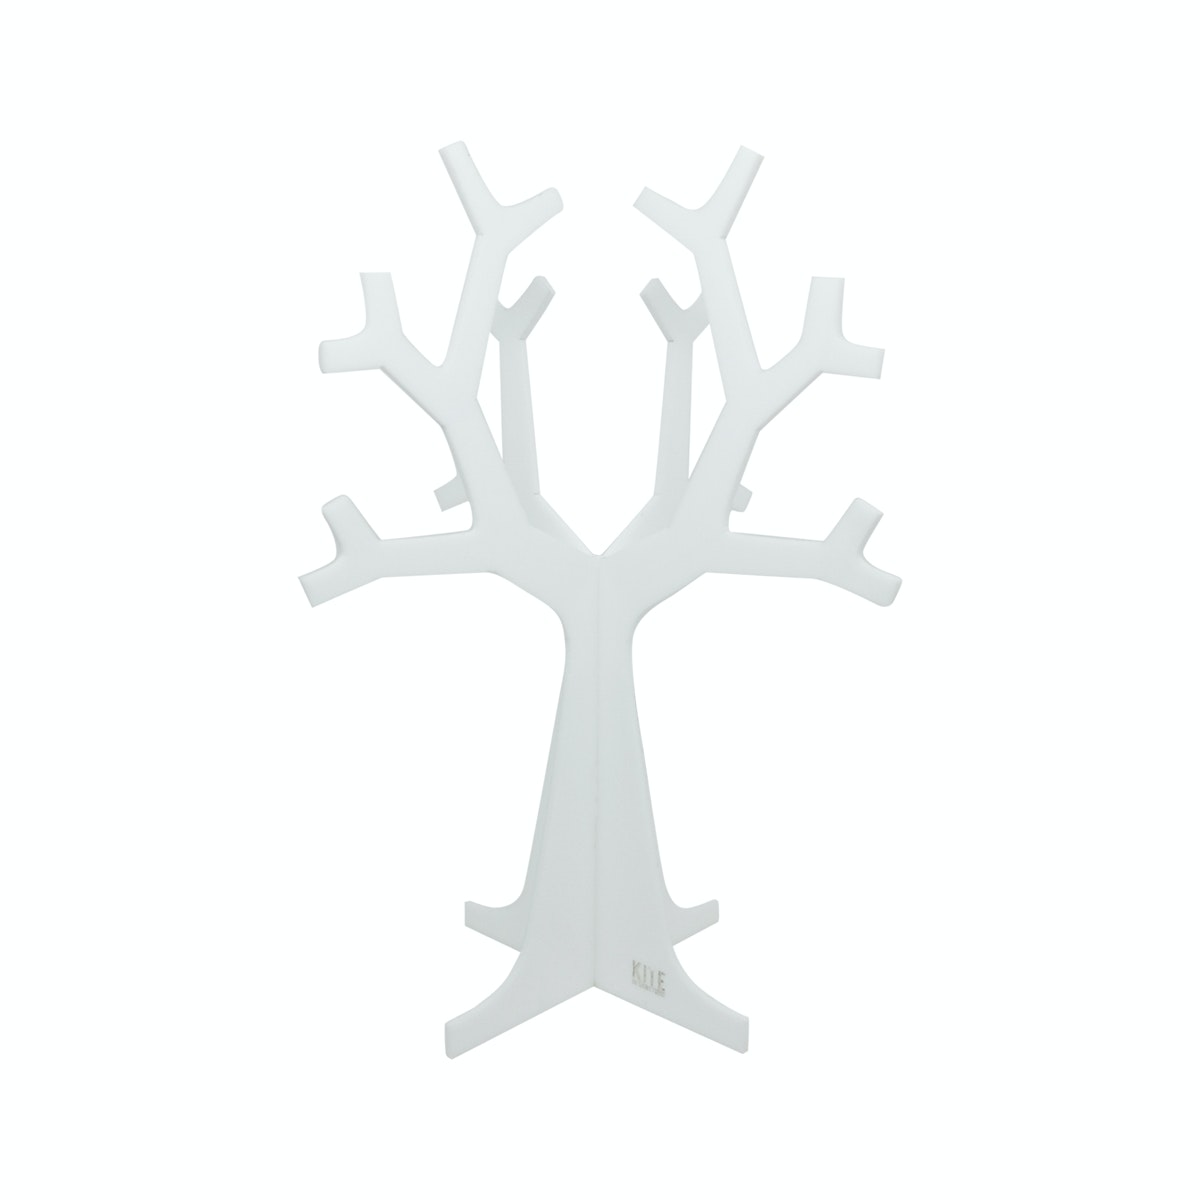 Kite Design Jewelry Tree White